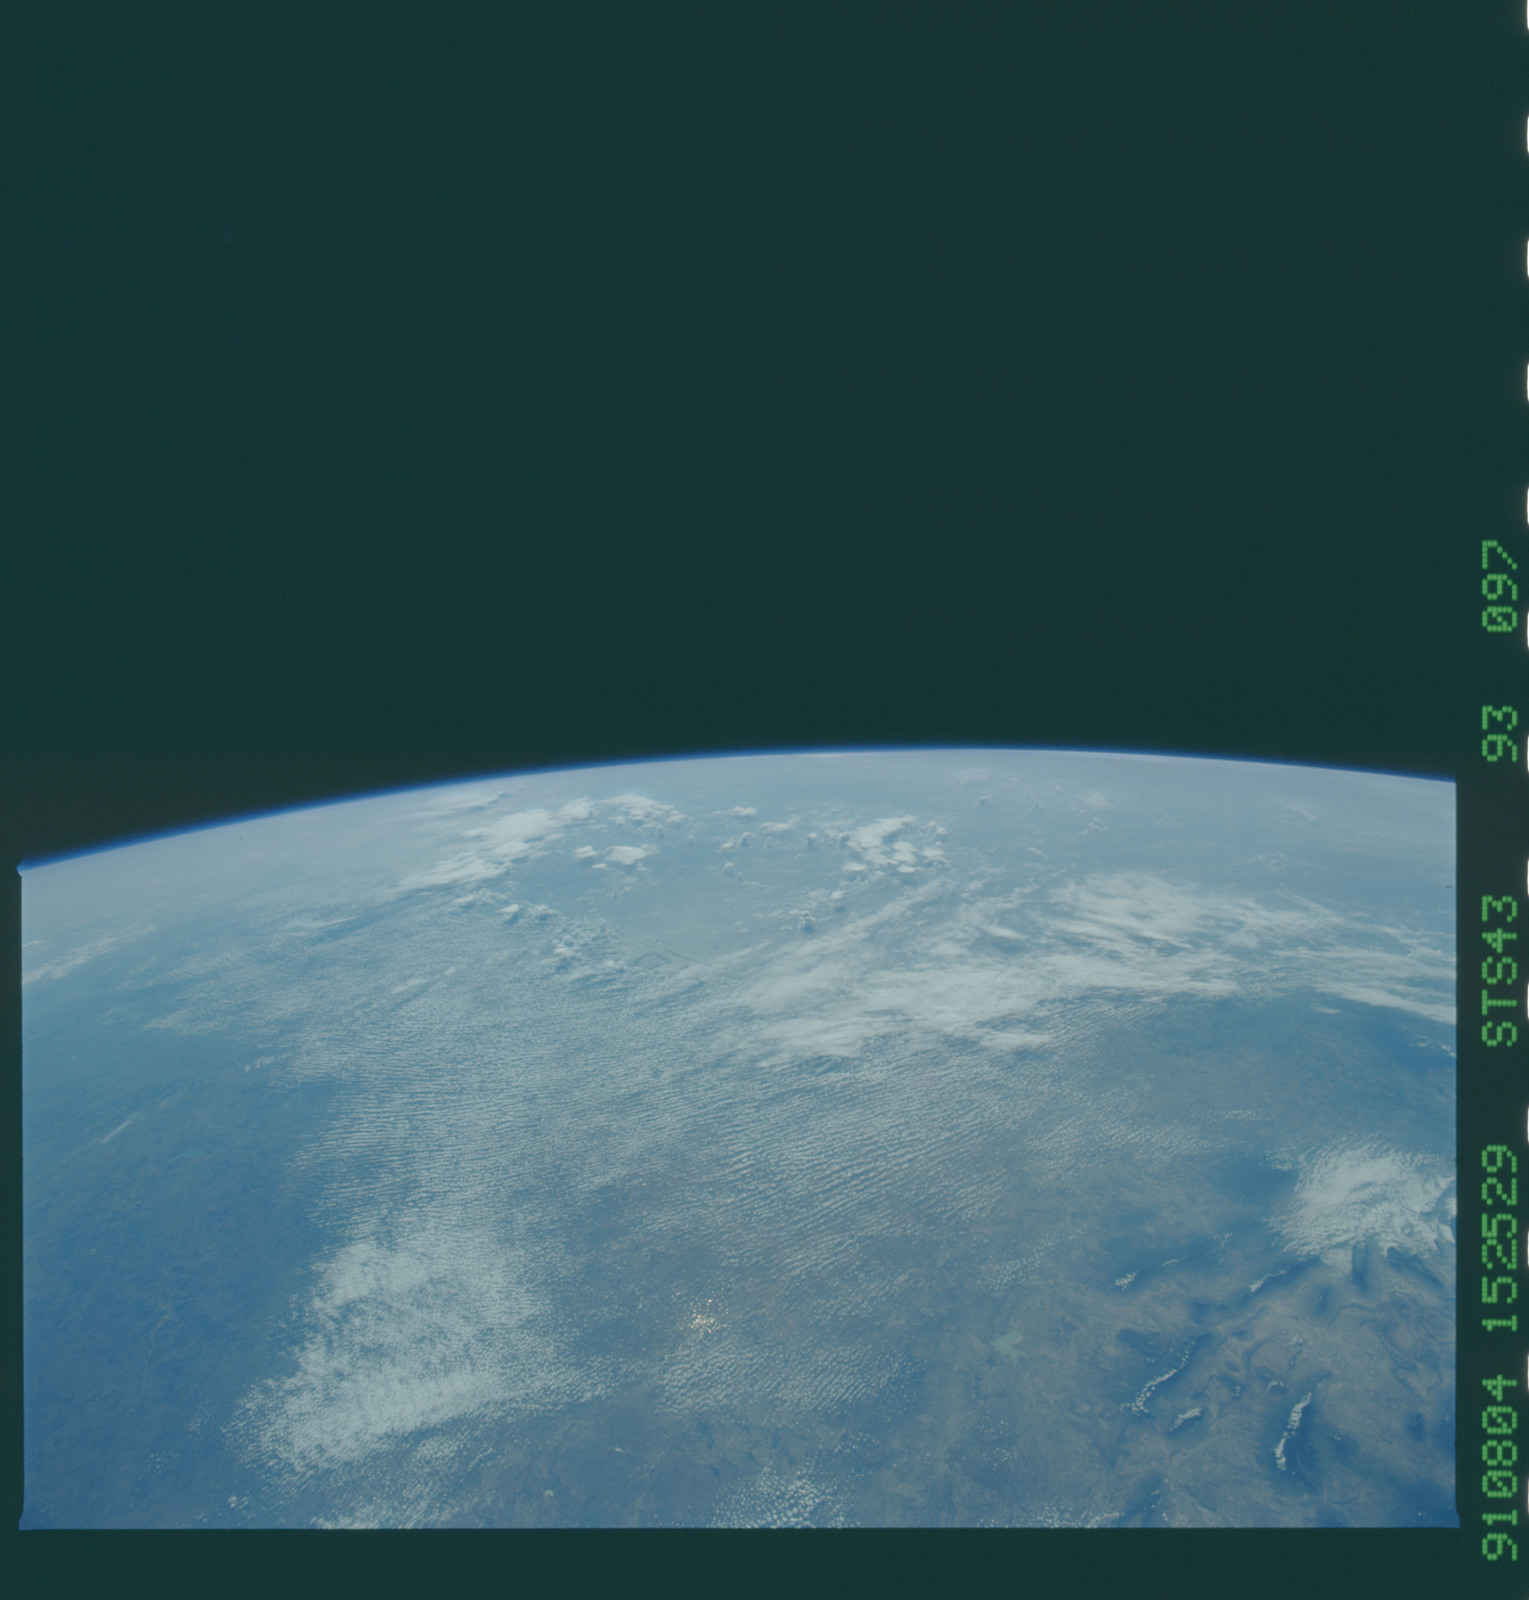 S43-93-097 - STS-043 - STS-43 earth observations